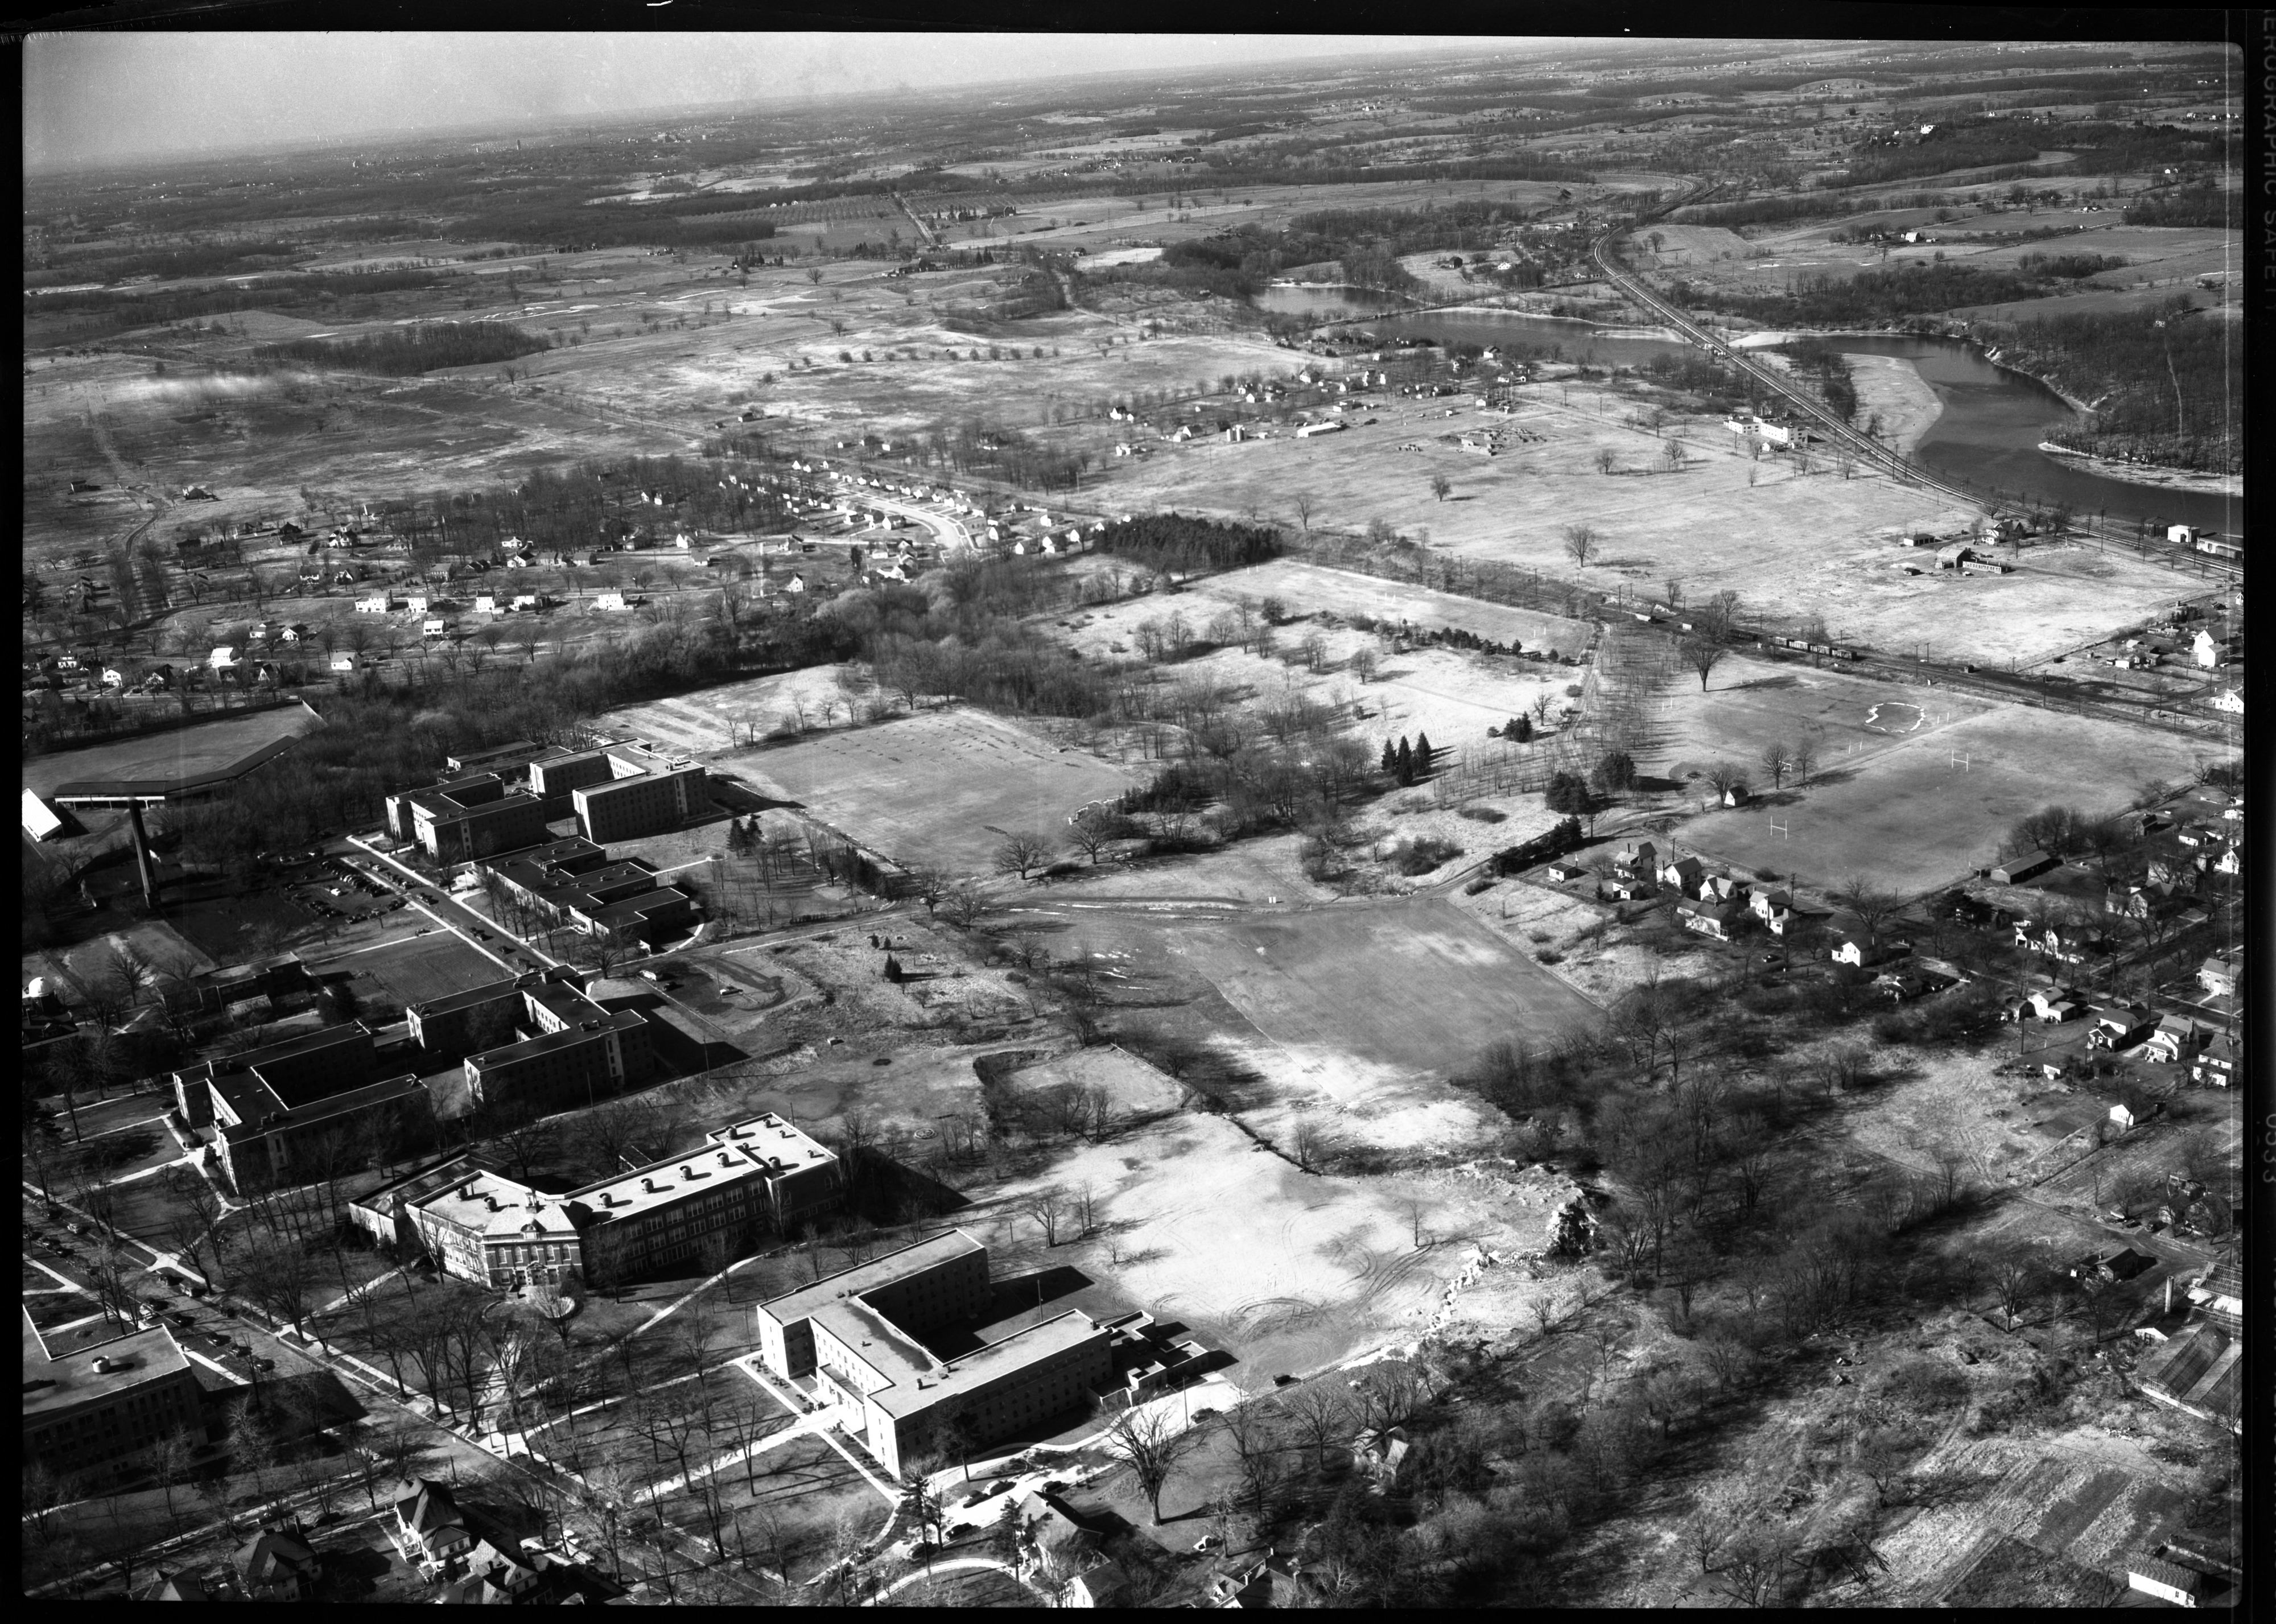 Aerial Photograph of Golf Course at State Normal College, Ypsilanti, February 1950 image